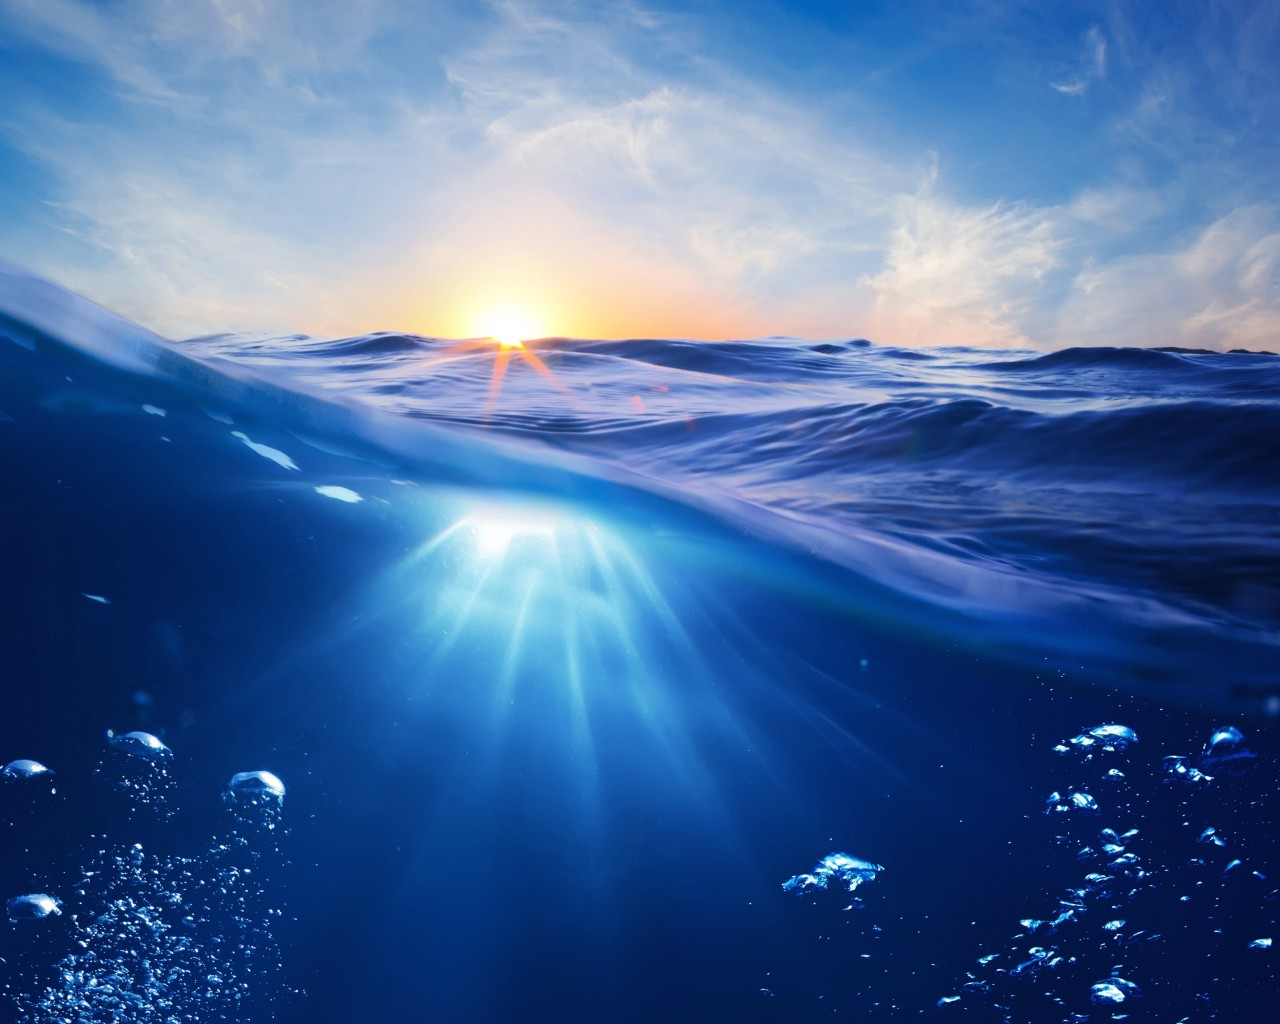 Sunrise Half Underwater Wallpaper for Desktop 1280x1024